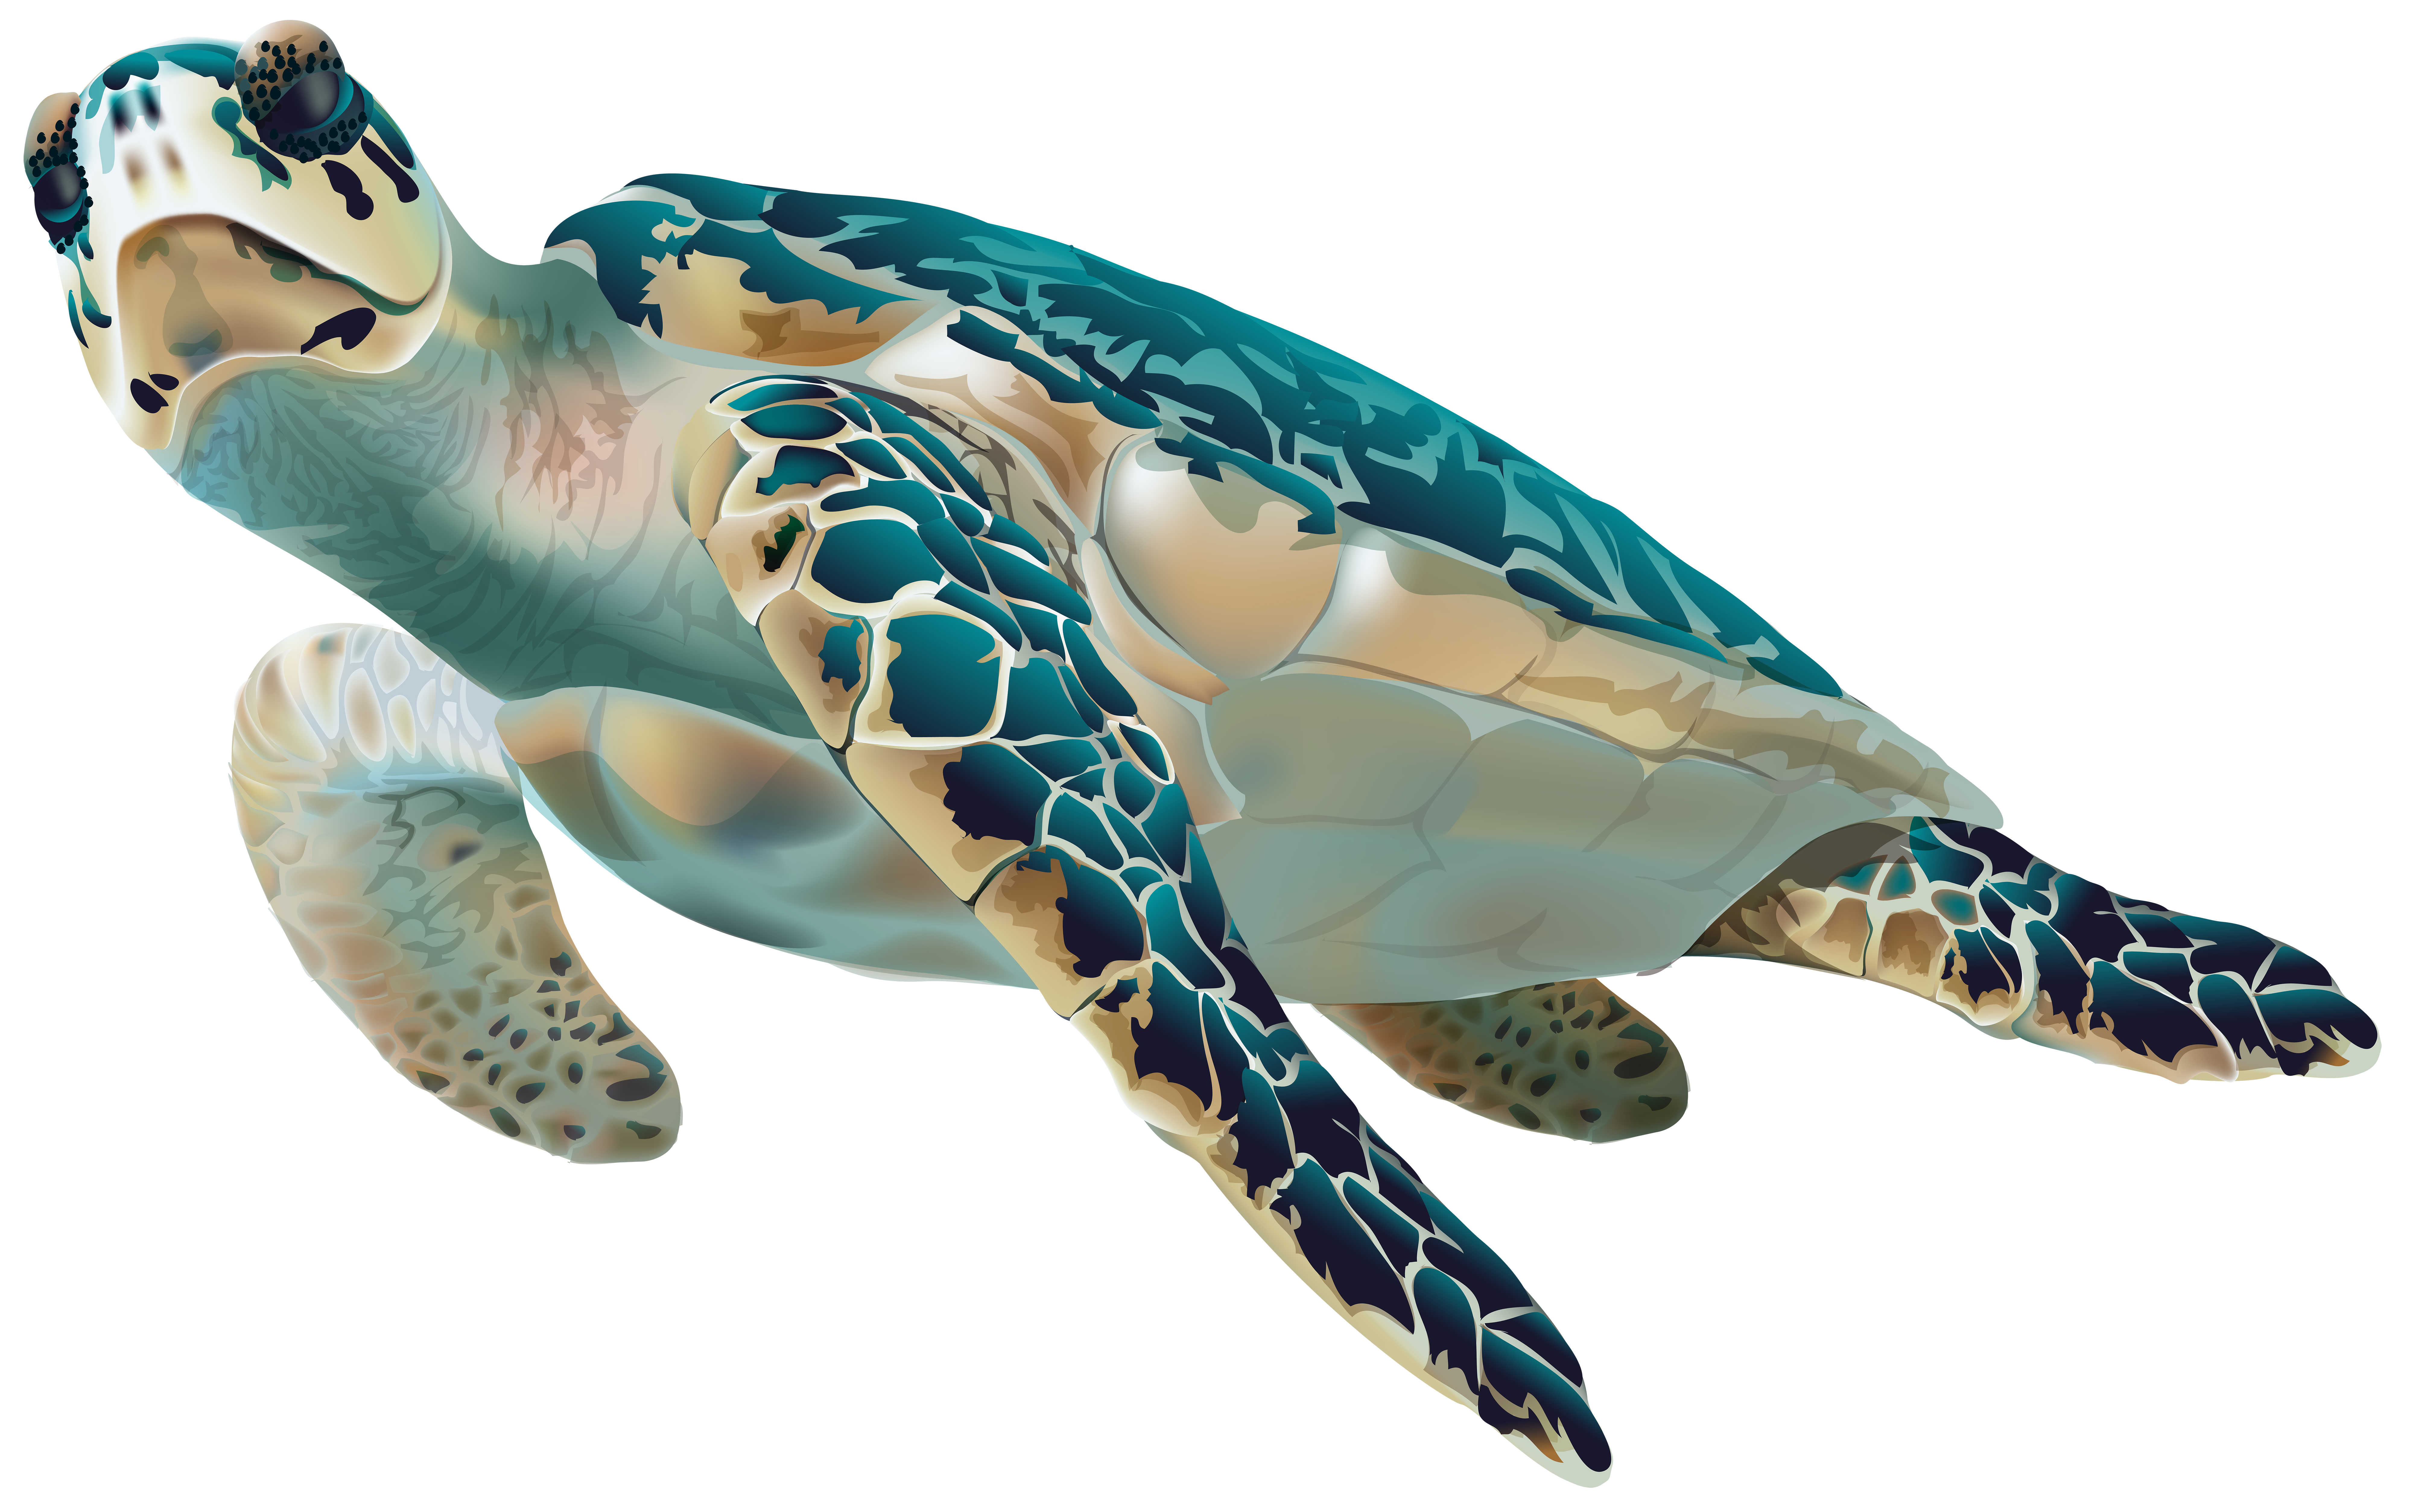 Sea Turtle Png Transparent Clip Art Image Gallery Yopriceville High Quality Images And Transparent Png Free Clipart Turtle Sea Turtle Cartoon Turtle